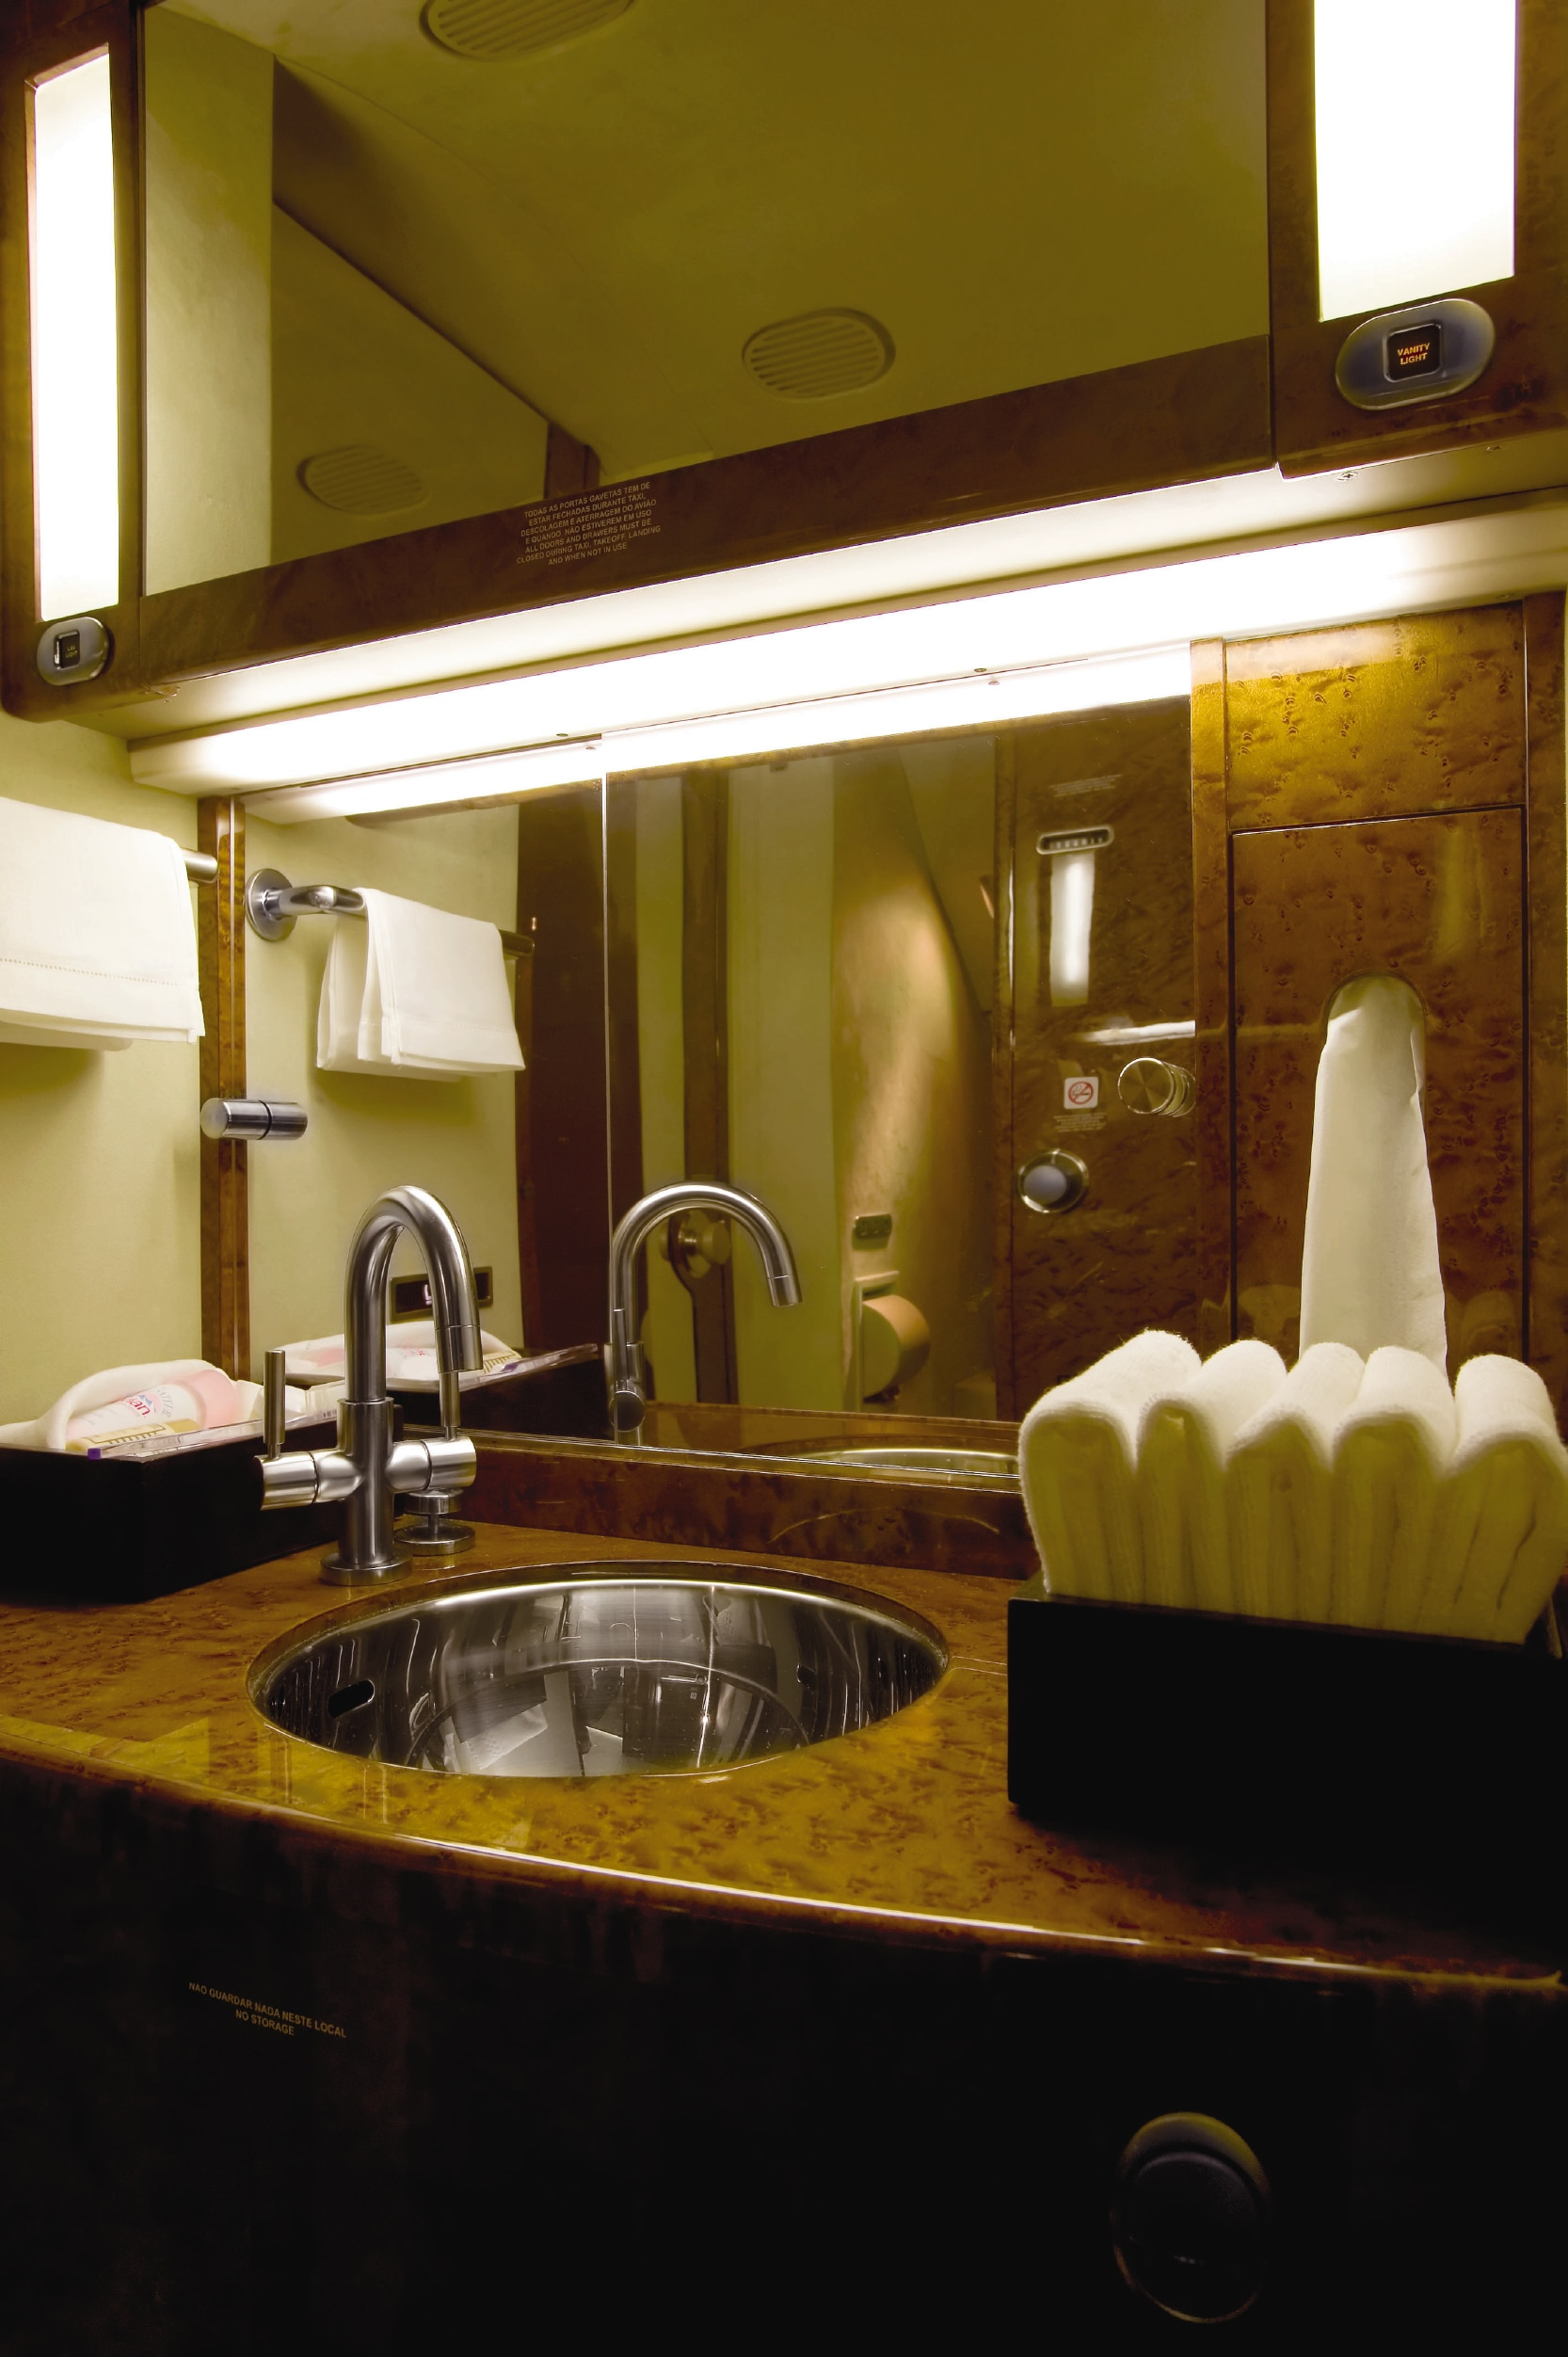 private jet bathroom 2017 - ototrends.net